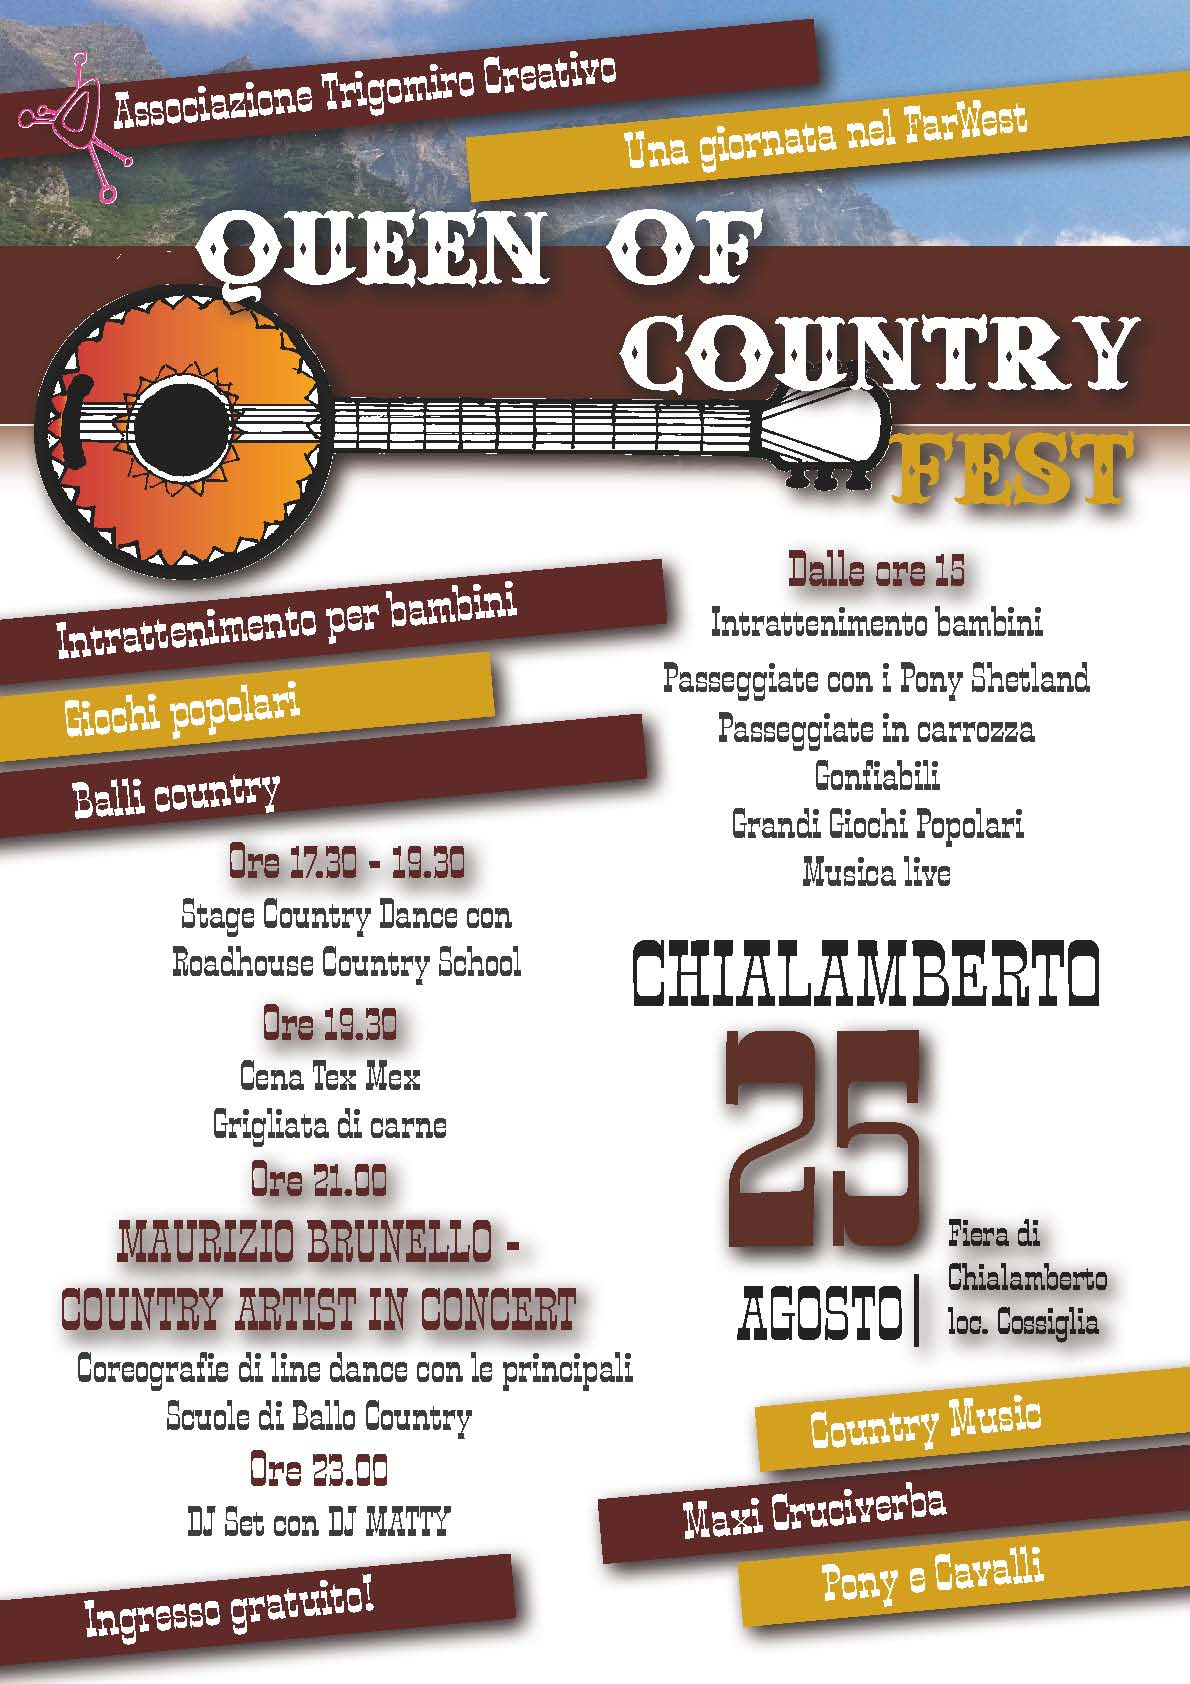 Queen Of Country Fest